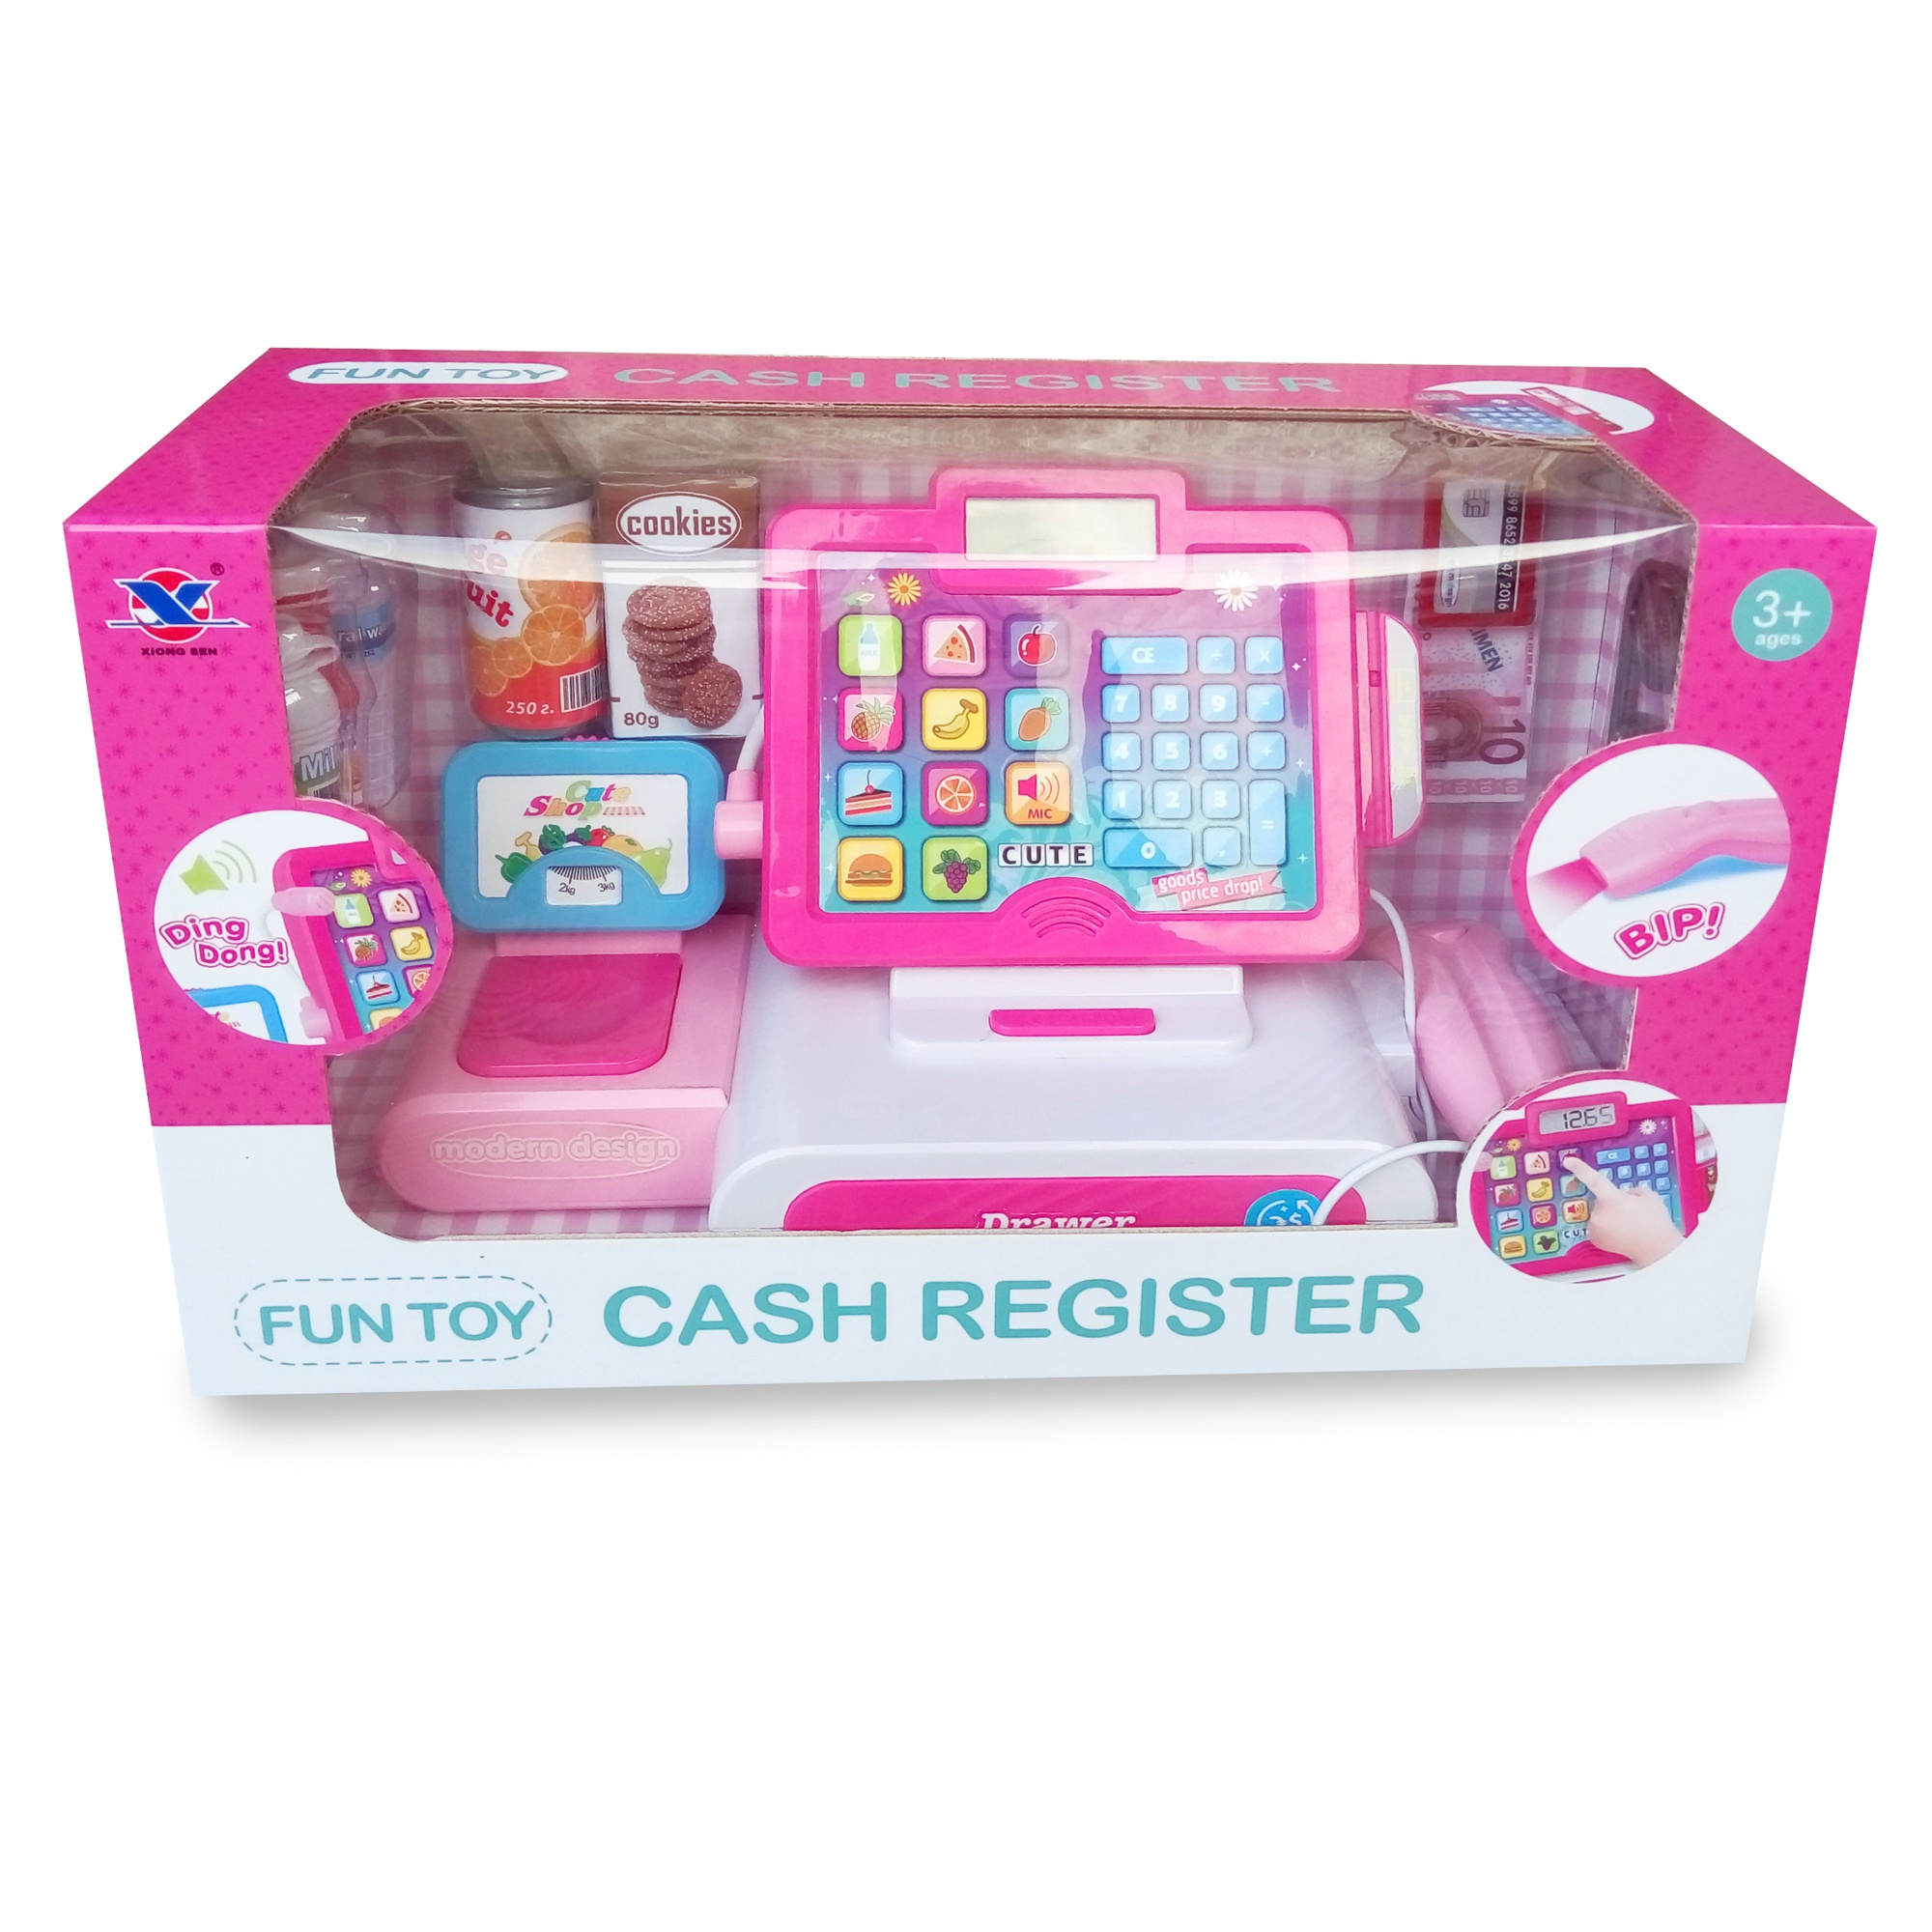 2019 New ABS Plastic Pretend Play Supermarket Children Cash Register Toy With Sounds Light Microphone And Money Box For Girls